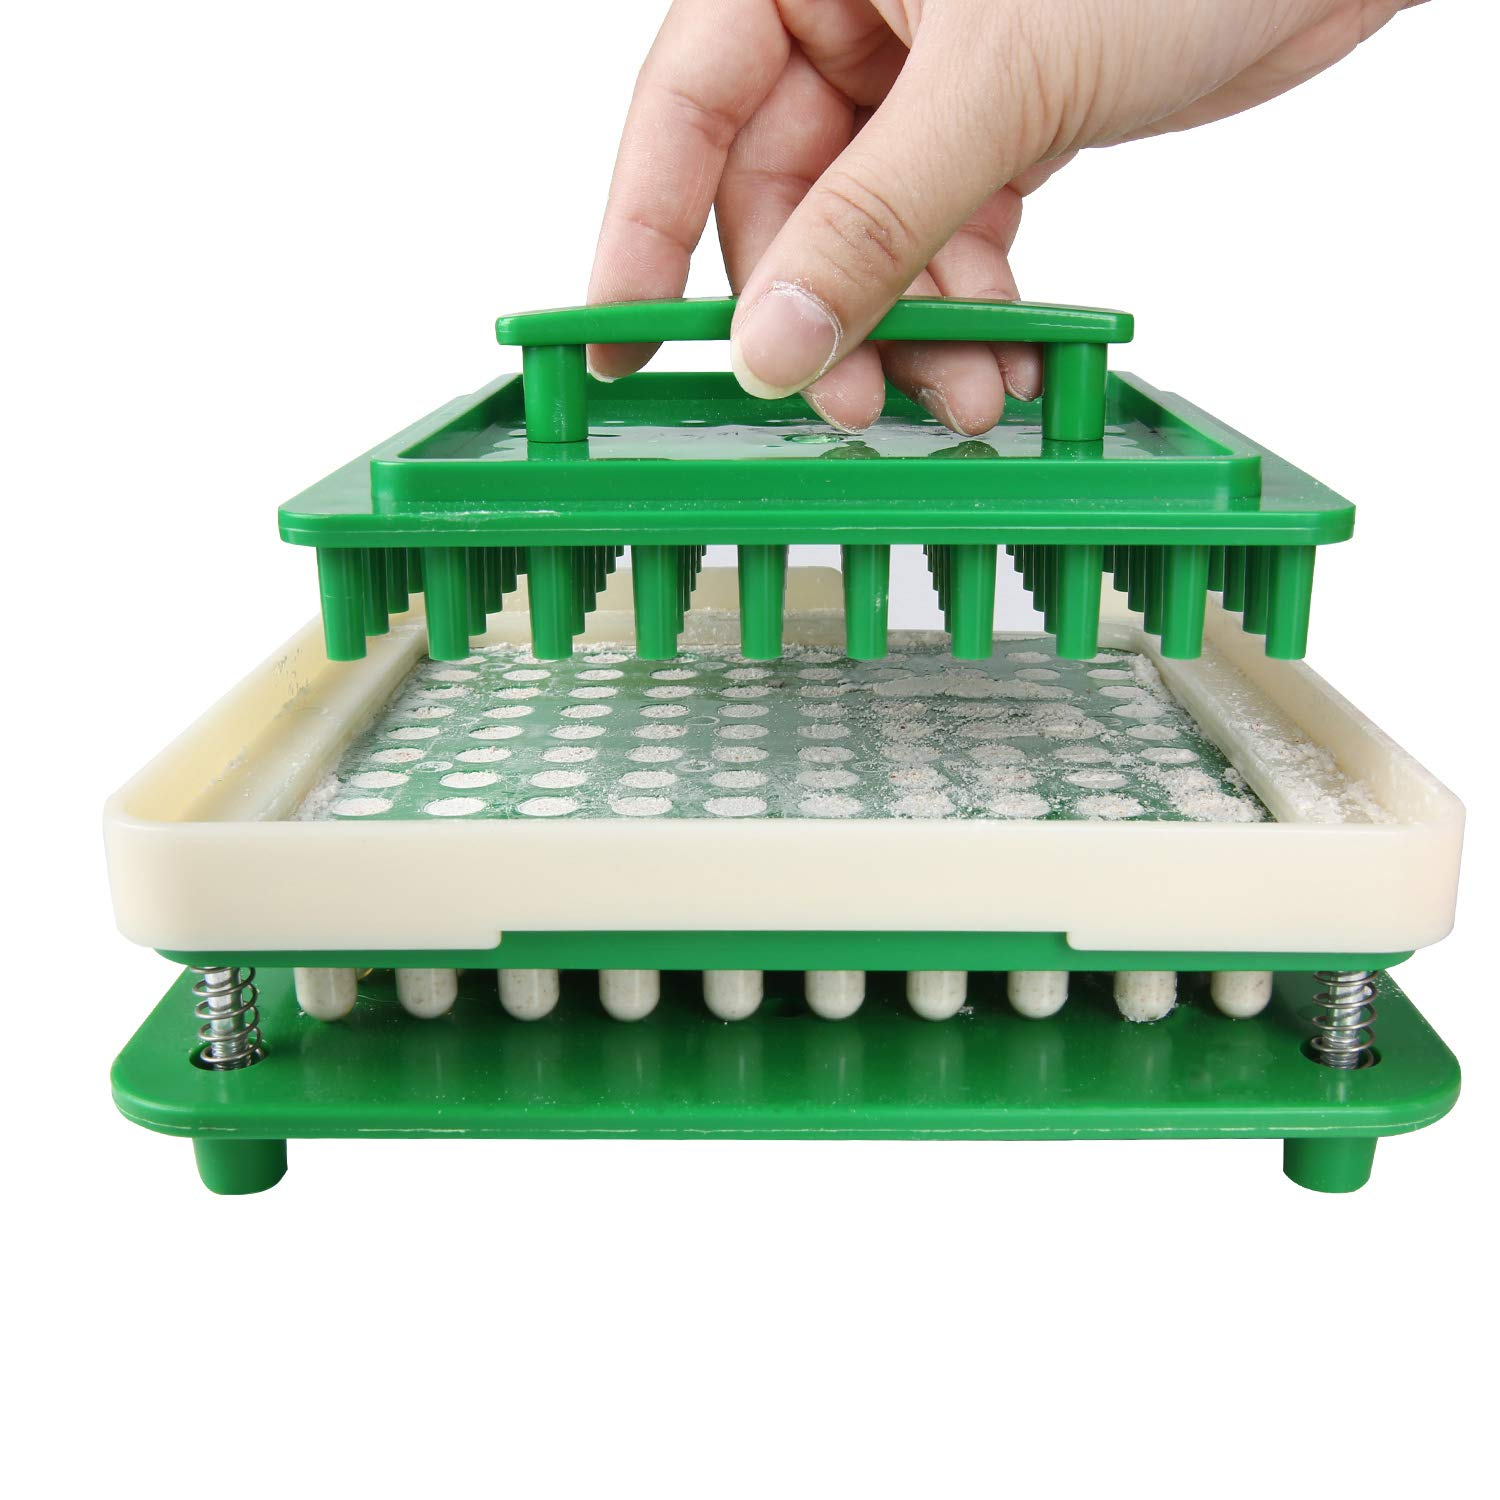 100 Hole (000#) Capsule Holder with Tamper for Size 000 Empty Capsules Holding Tray Pill Dispensers & Reminders -Green by wananfu (Image #4)